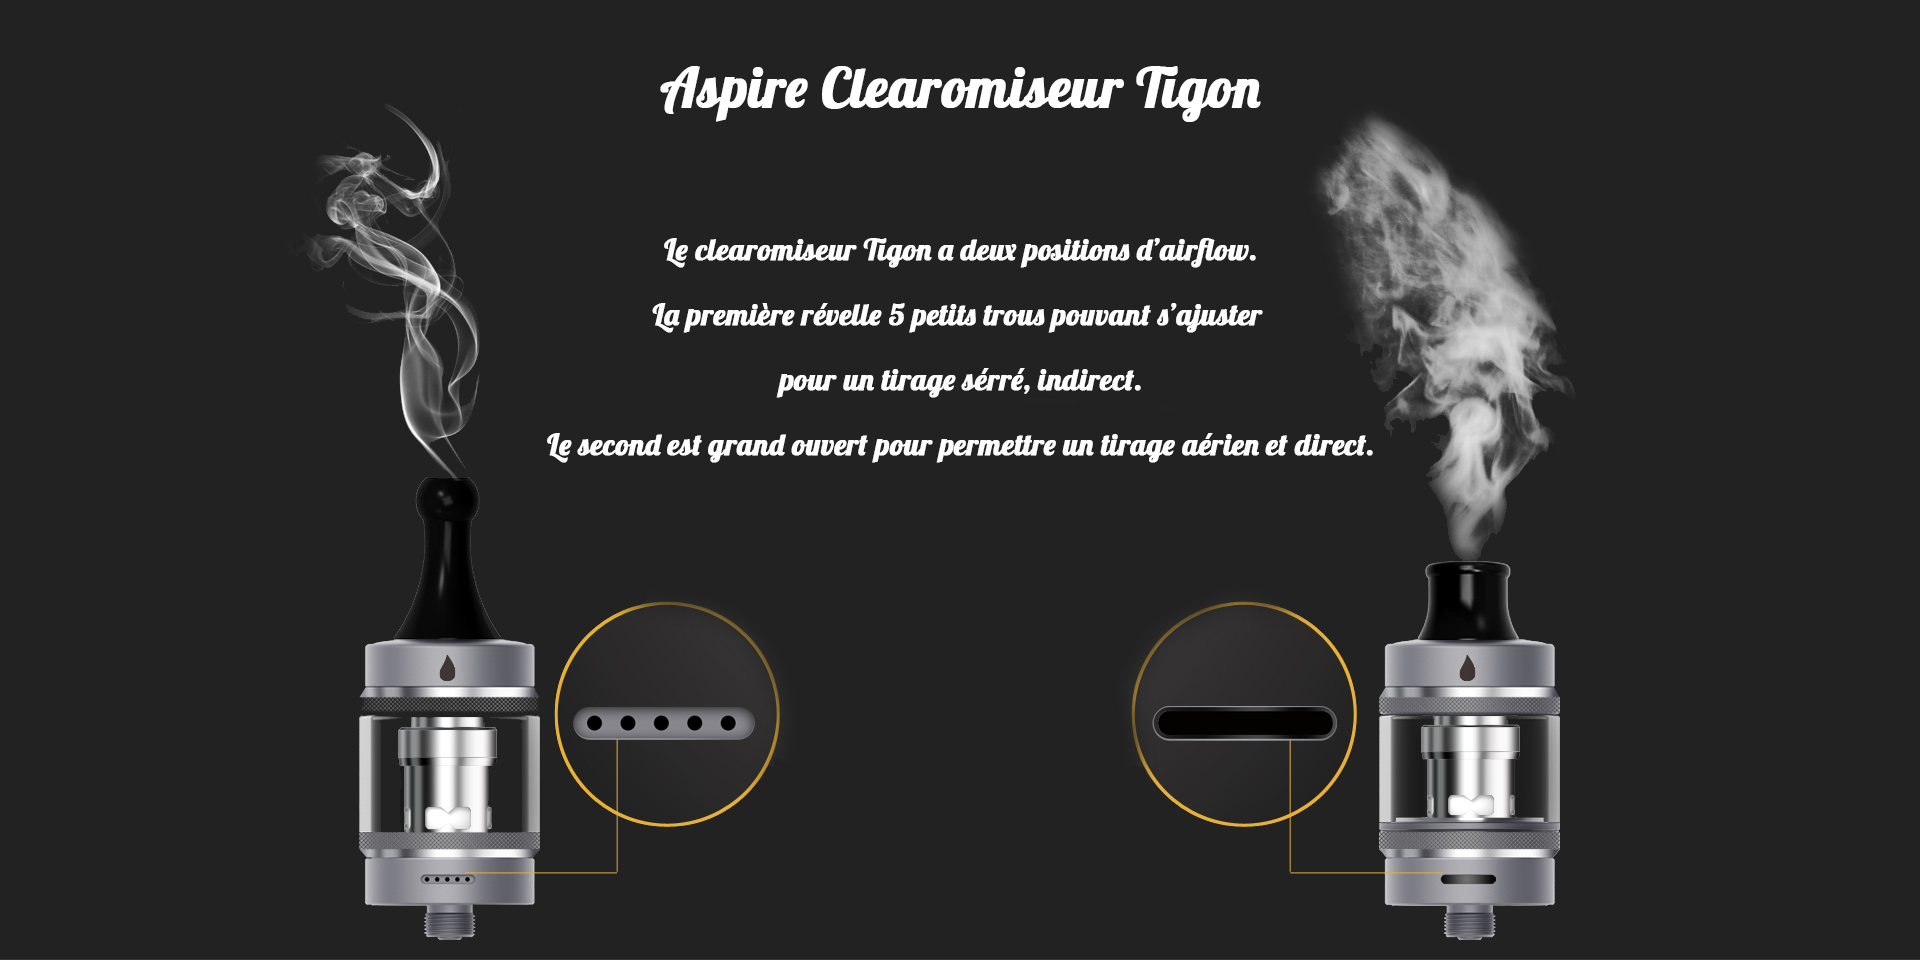 Aspire Tigon Clearomiseur